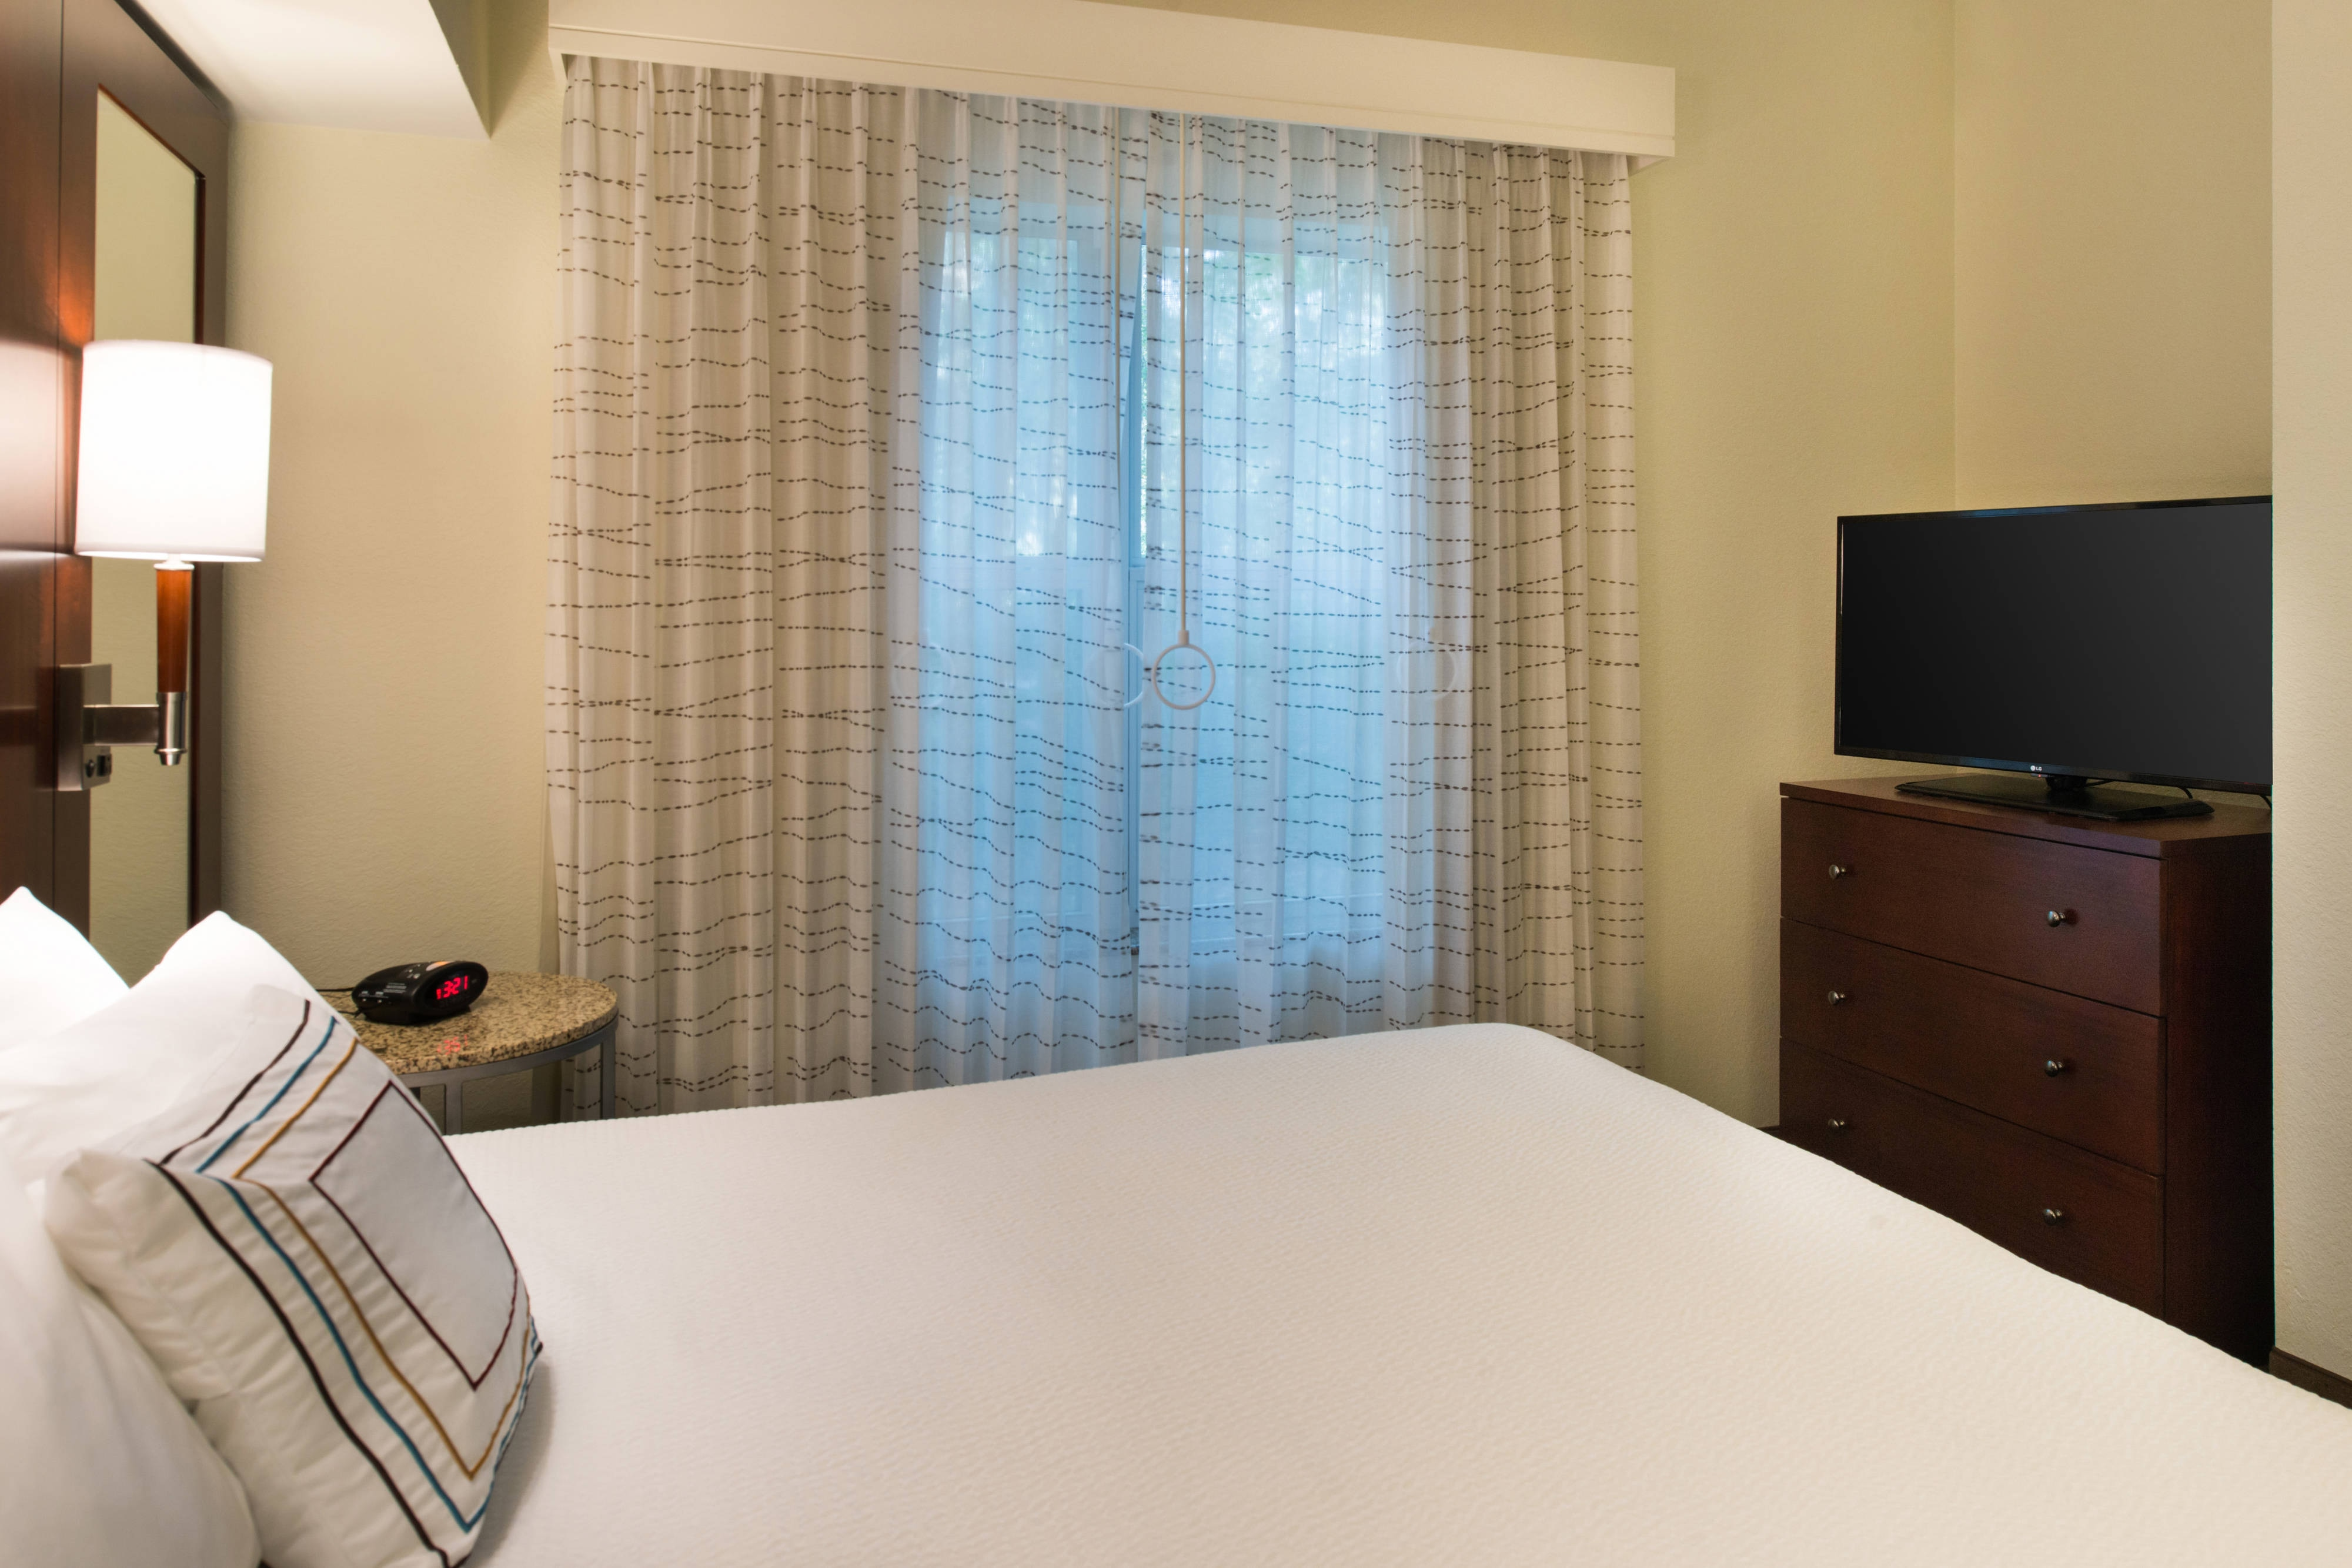 gainesville fl hotels large suites